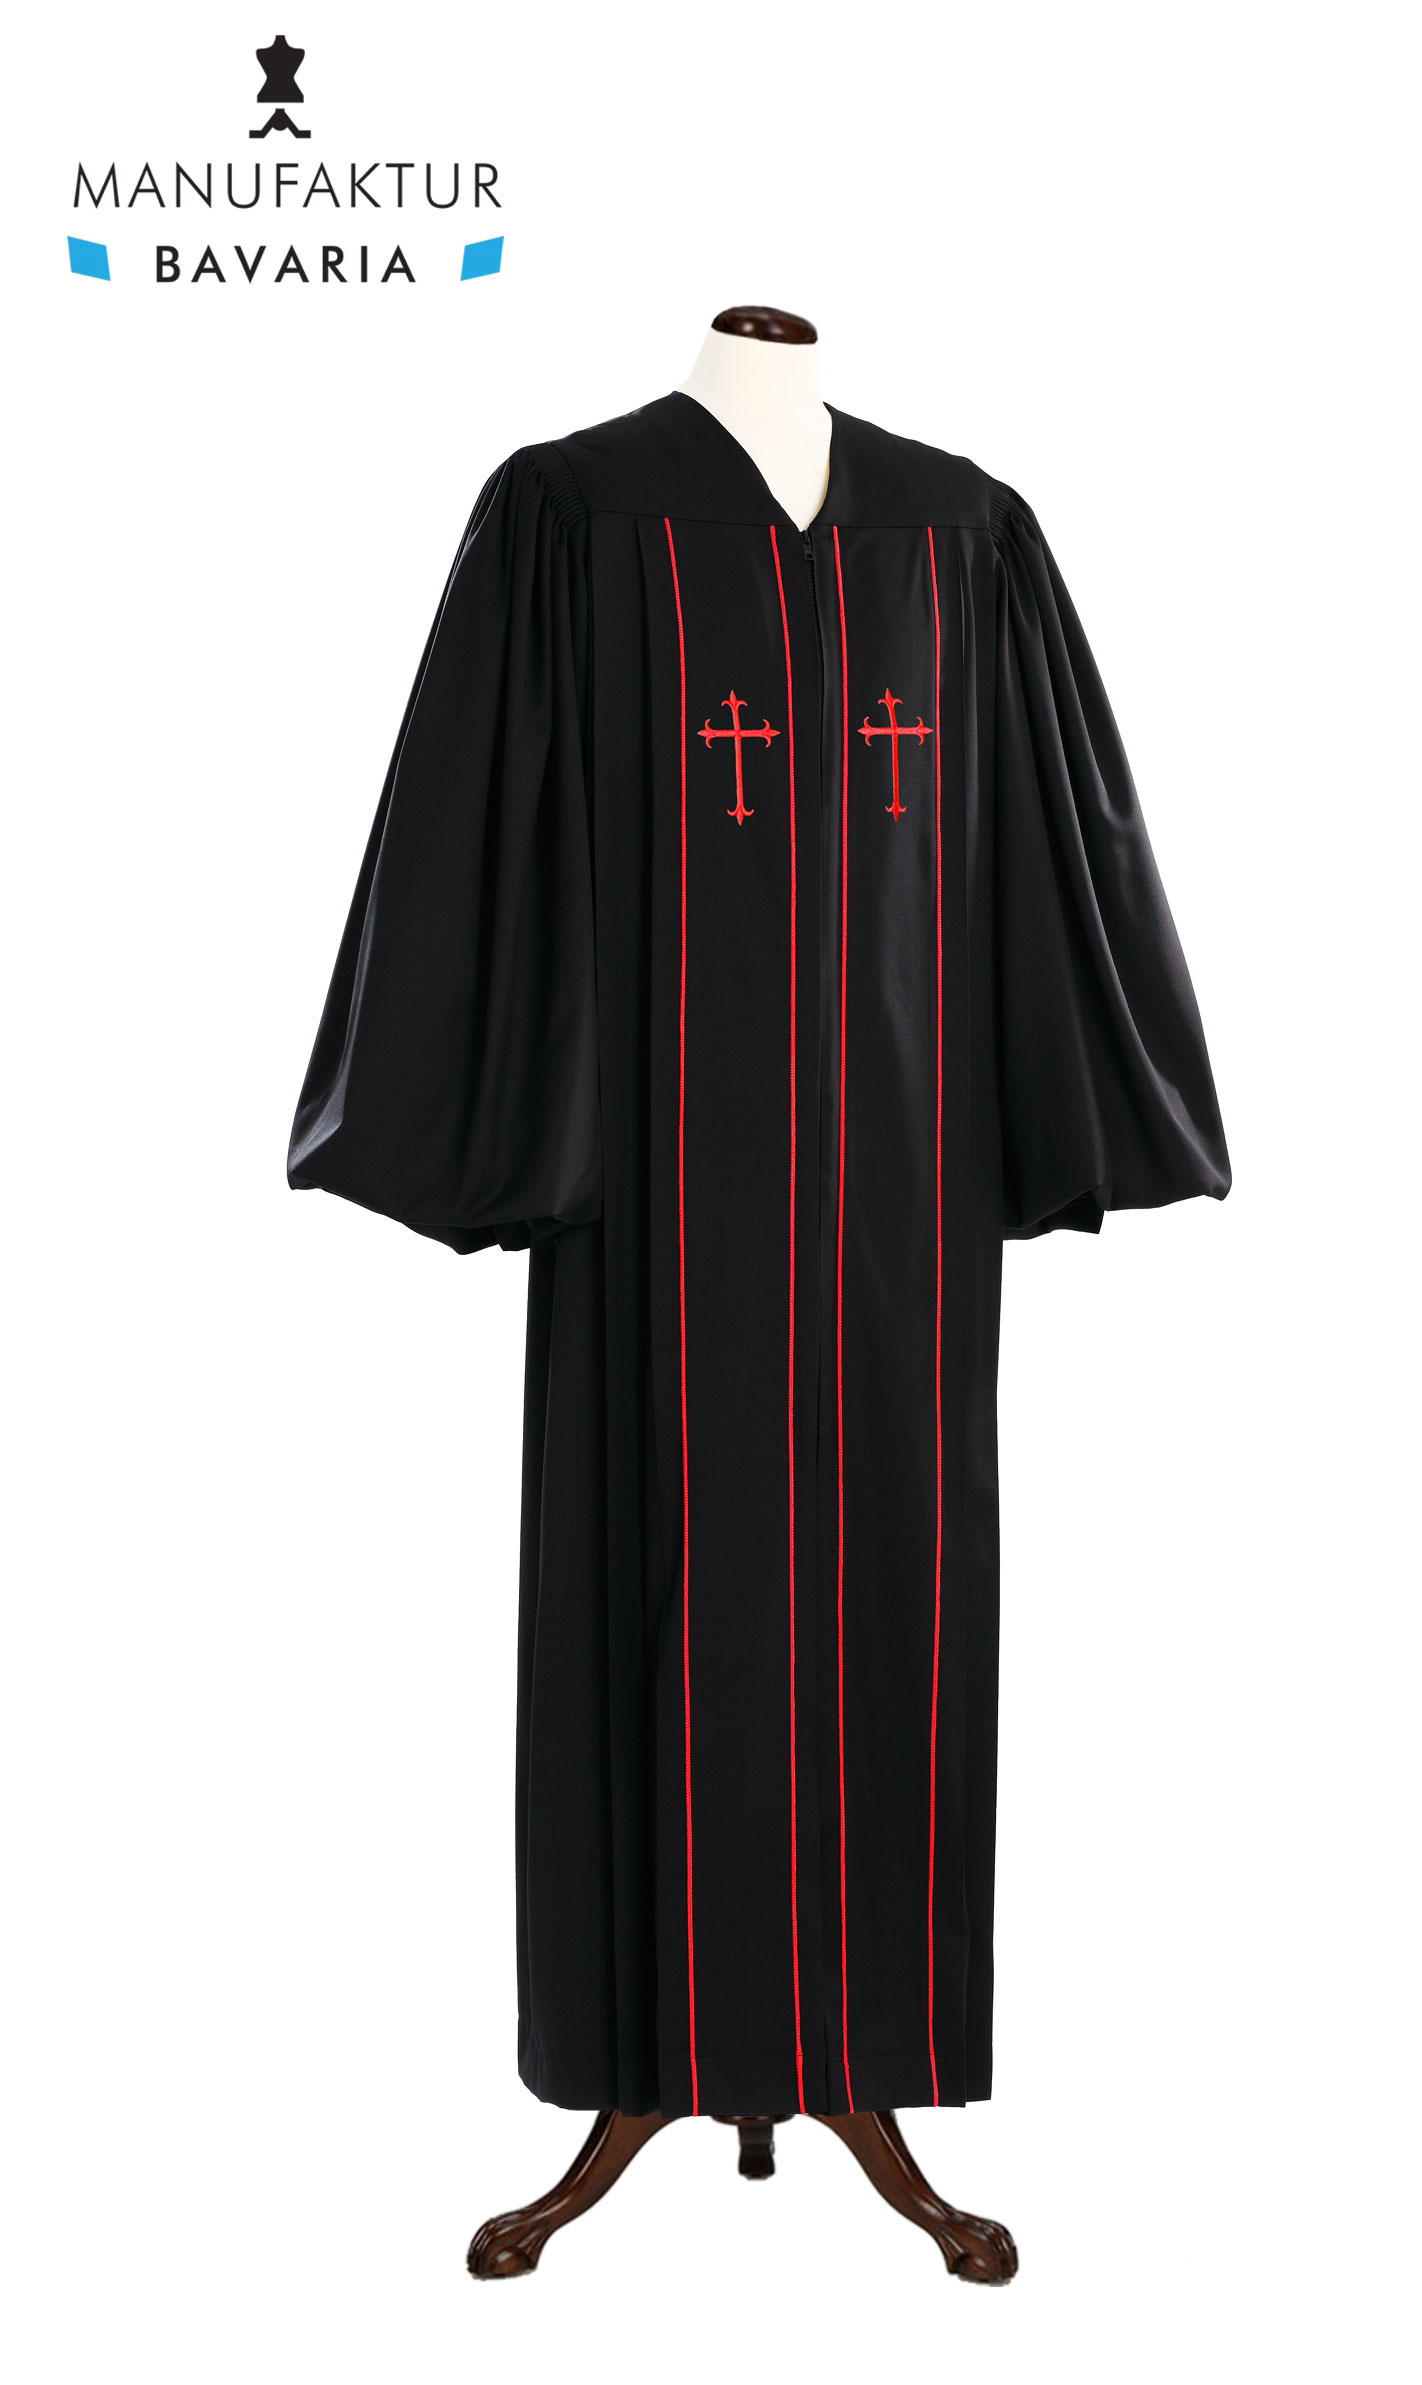 Clerical Clergy / Pulpit Robe, royal regalia